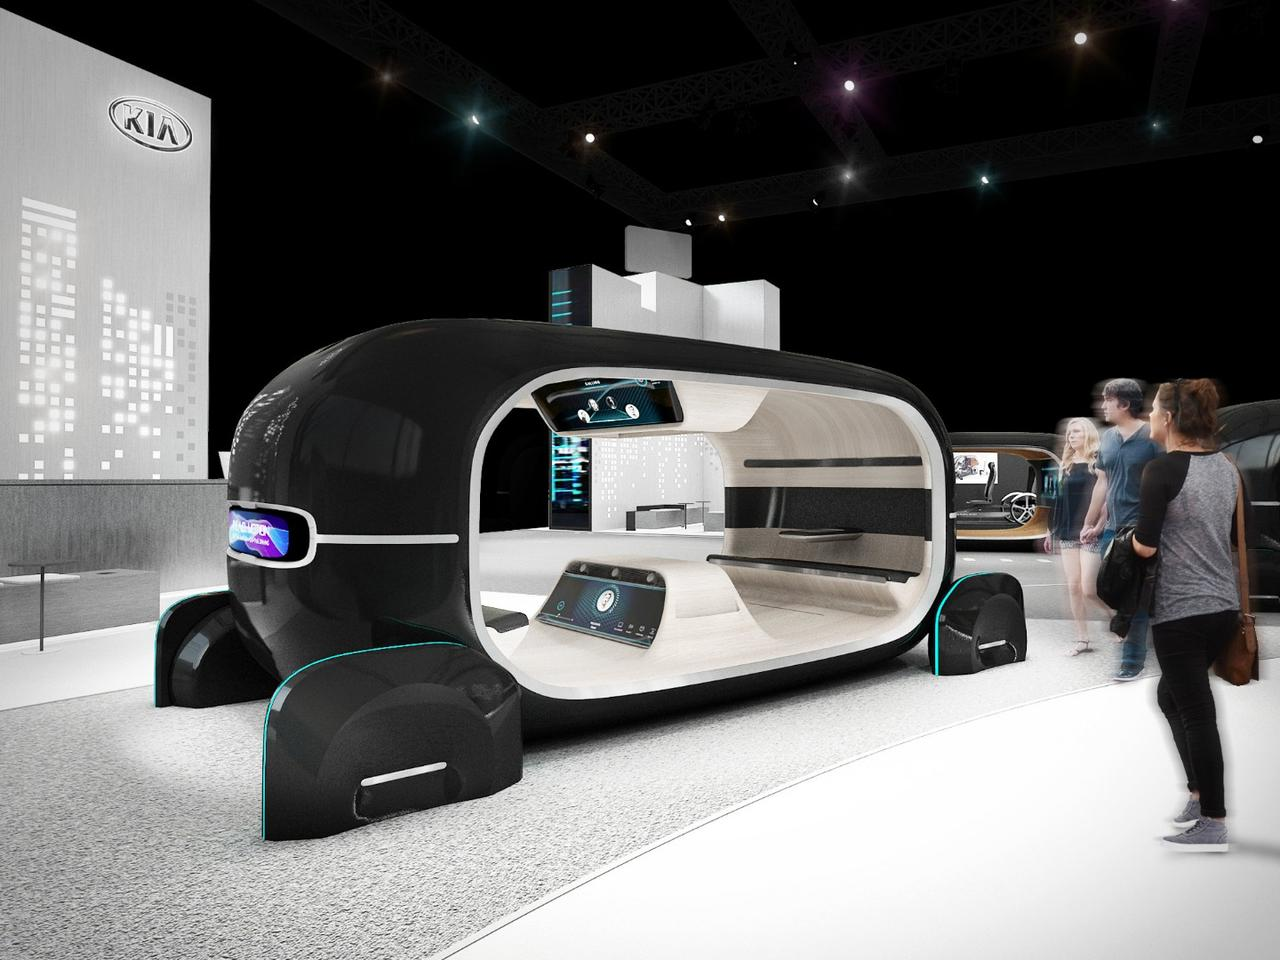 Kia's CES display focuses on tracking and managing passenger's emotions in future autonomous vehicles